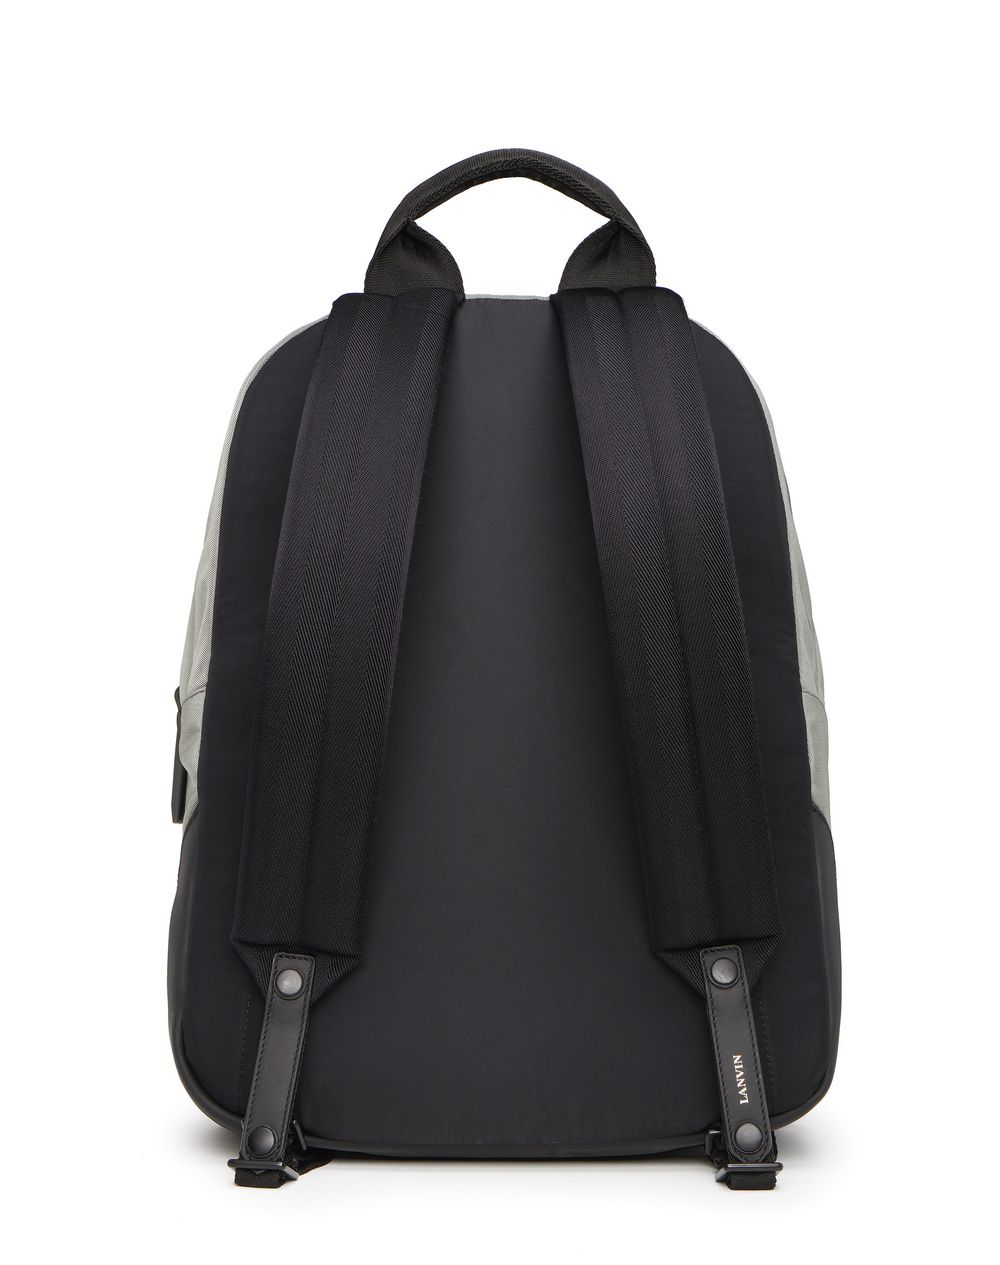 ZIPPERED BACKPACK WITH PATCHES - Lanvin